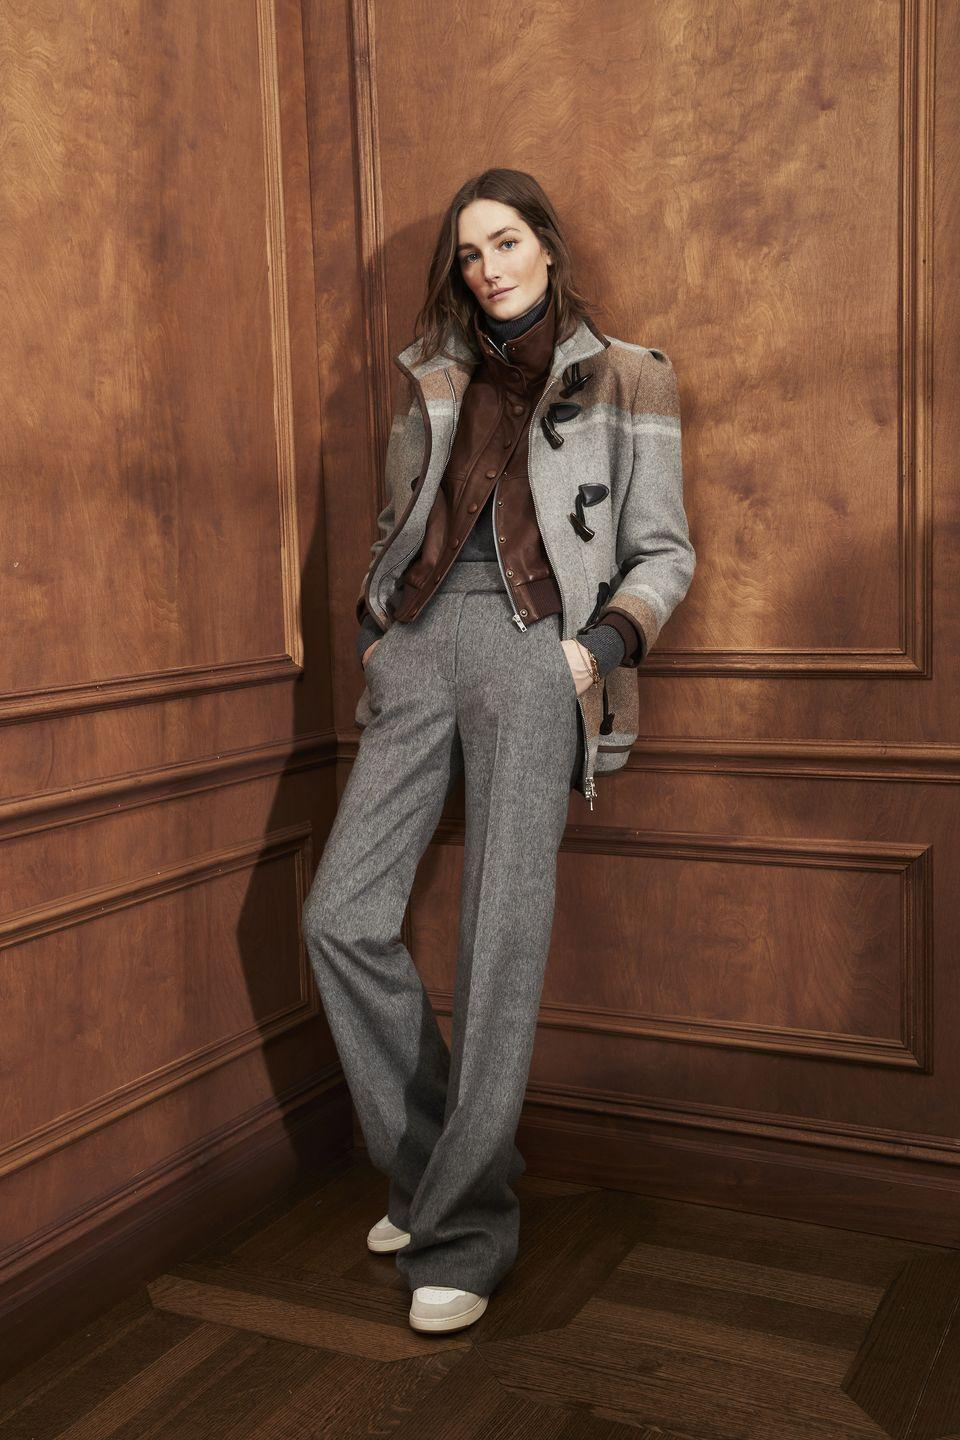 "<p>Autumn/winter 2021 was all about casual tailoring for Veronica Beard with the two namesake designers wanting to keep the ""new normal in mind"". </p><p>""Sweatsuits are worn with tailoring that features knitted cuffs for a relaxed and elevated look, while jumpsuits become the new two-piece suit, perfect for dressing up or dressing down,"" they explained. Plaid, stripes and paisley were met with warm greys and browns, while there are plenty of pieces designed for layering, making for an easy-to-wear but elevated wardrobe.</p>"